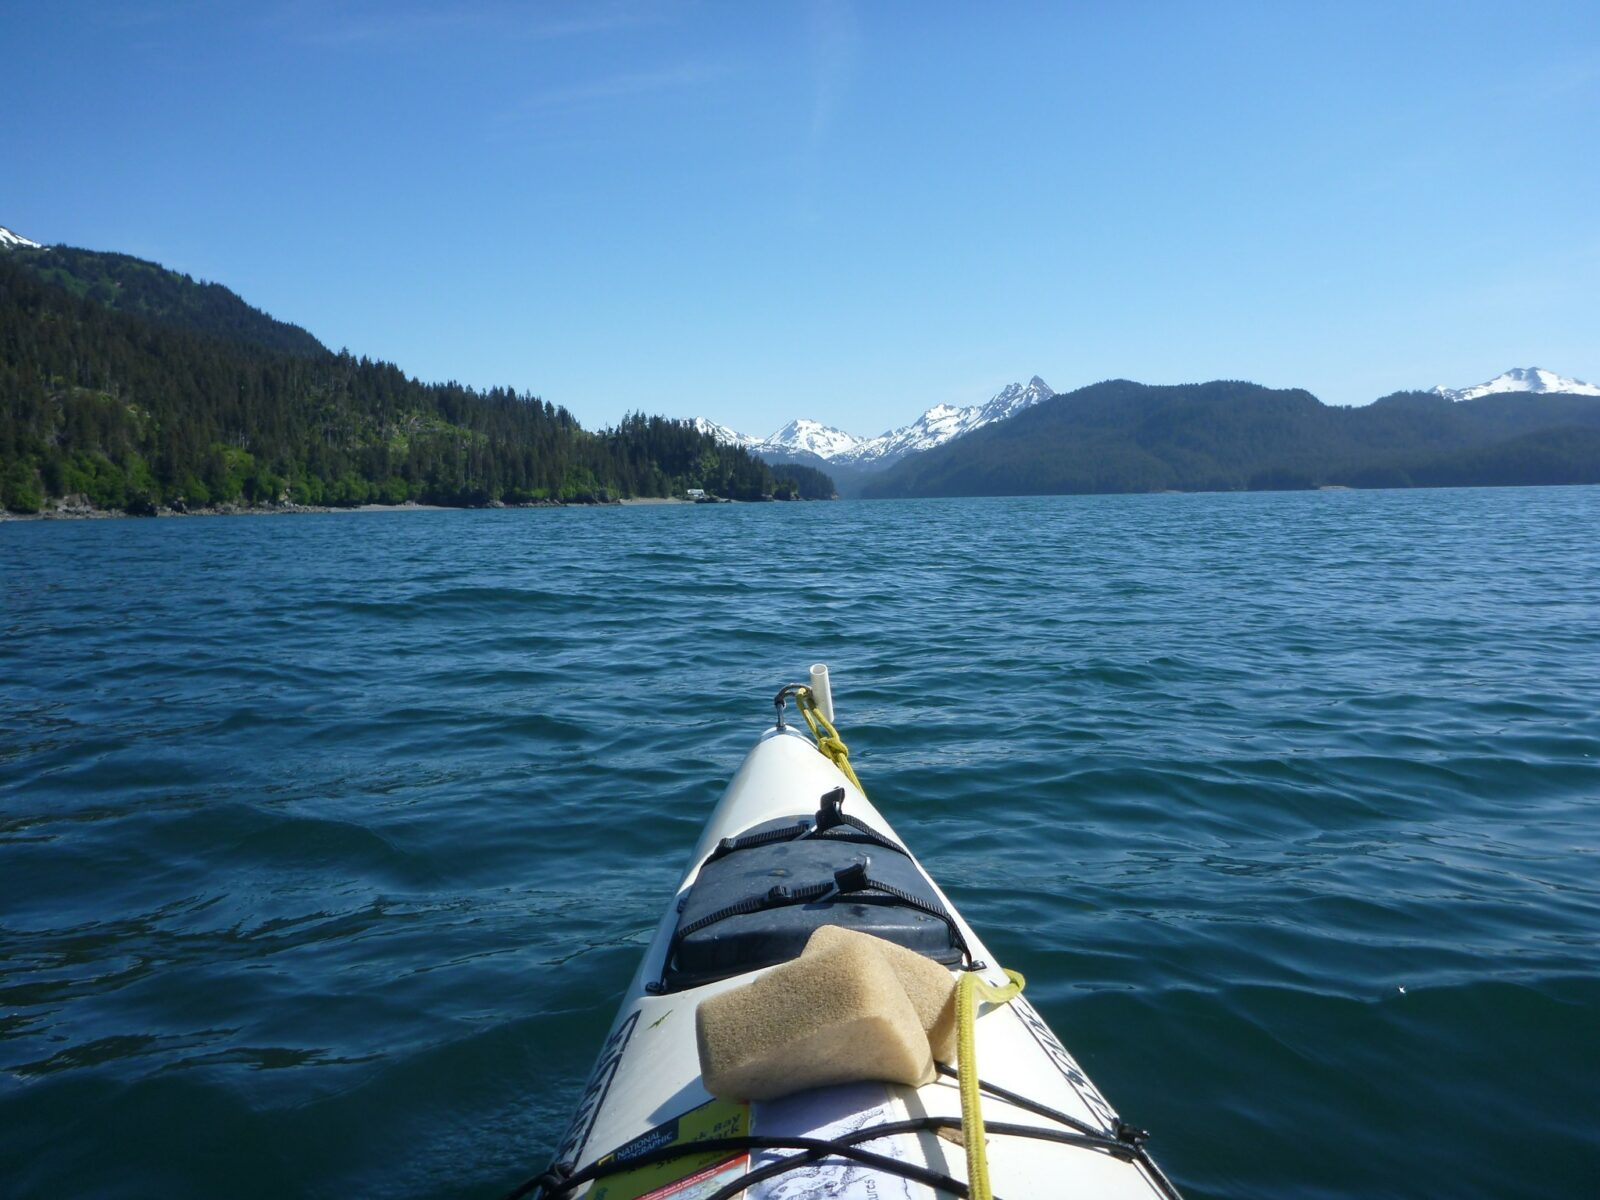 The front of a white kayak from the perspective of the person paddling it. In the distance are high snow capped mountains and evergreen forested hillsides